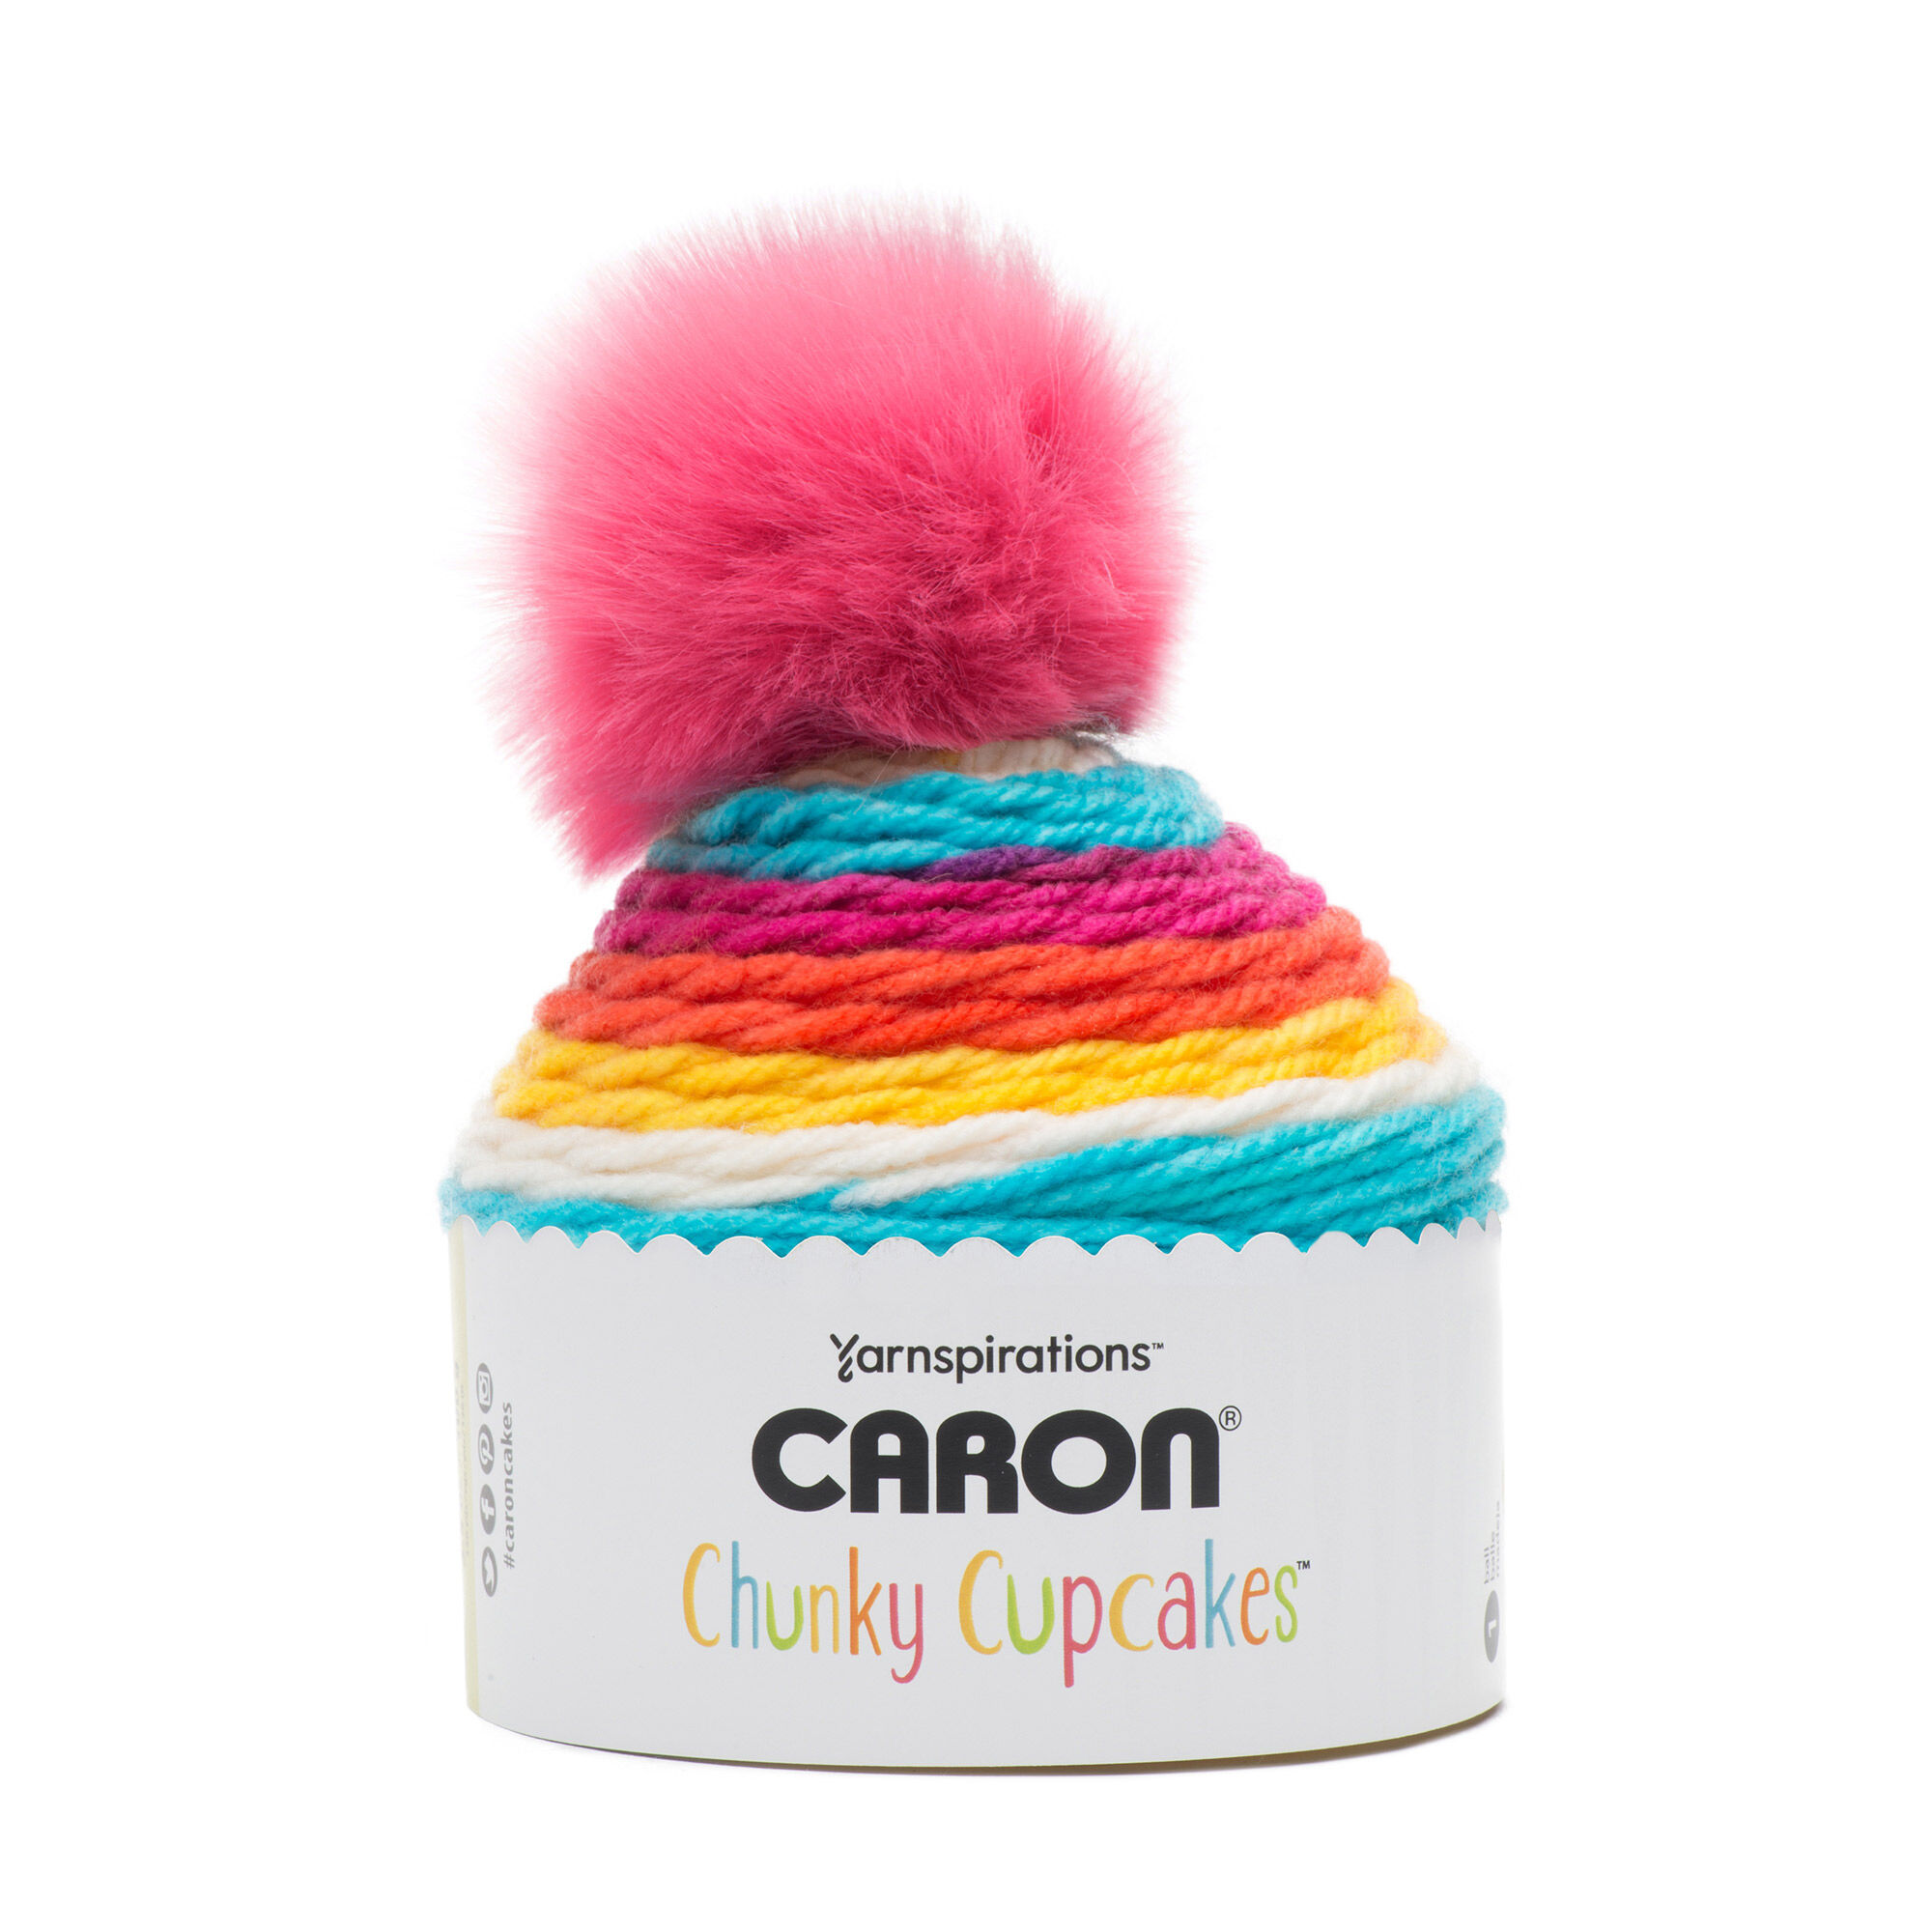 72334bc3ed9 More Inspirational Images. Caron Chunky Cupcakes ...